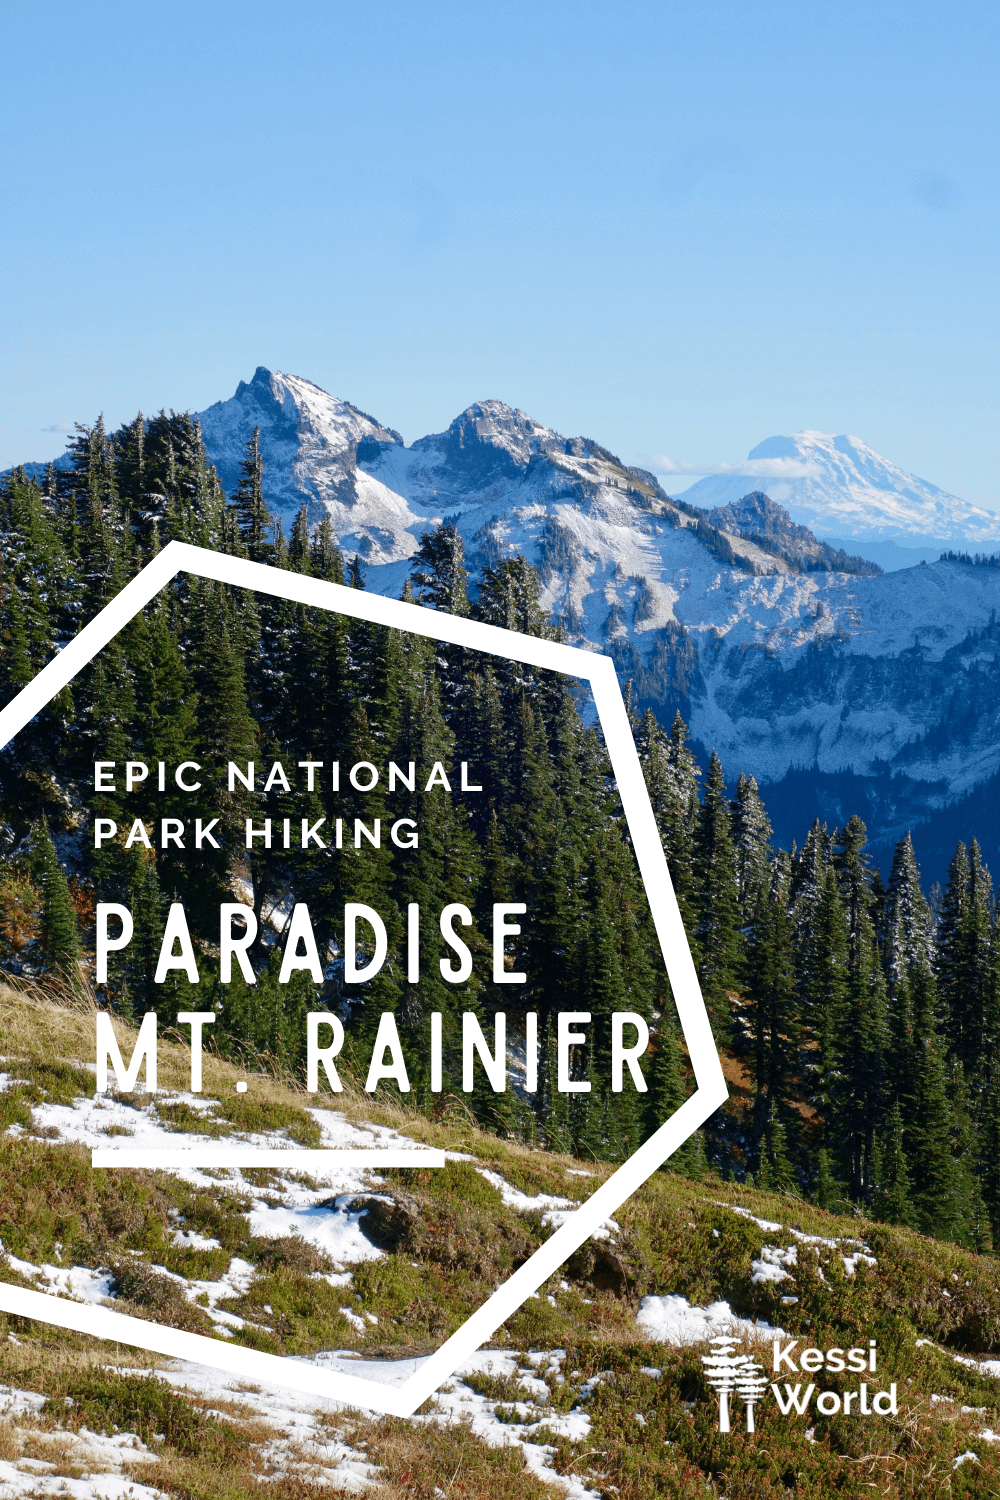 This Pinterest pin shows a view from Mt. Rainier looking towards Mt. Adams with light patches of snow in the foreground and thin alpine fir trees.